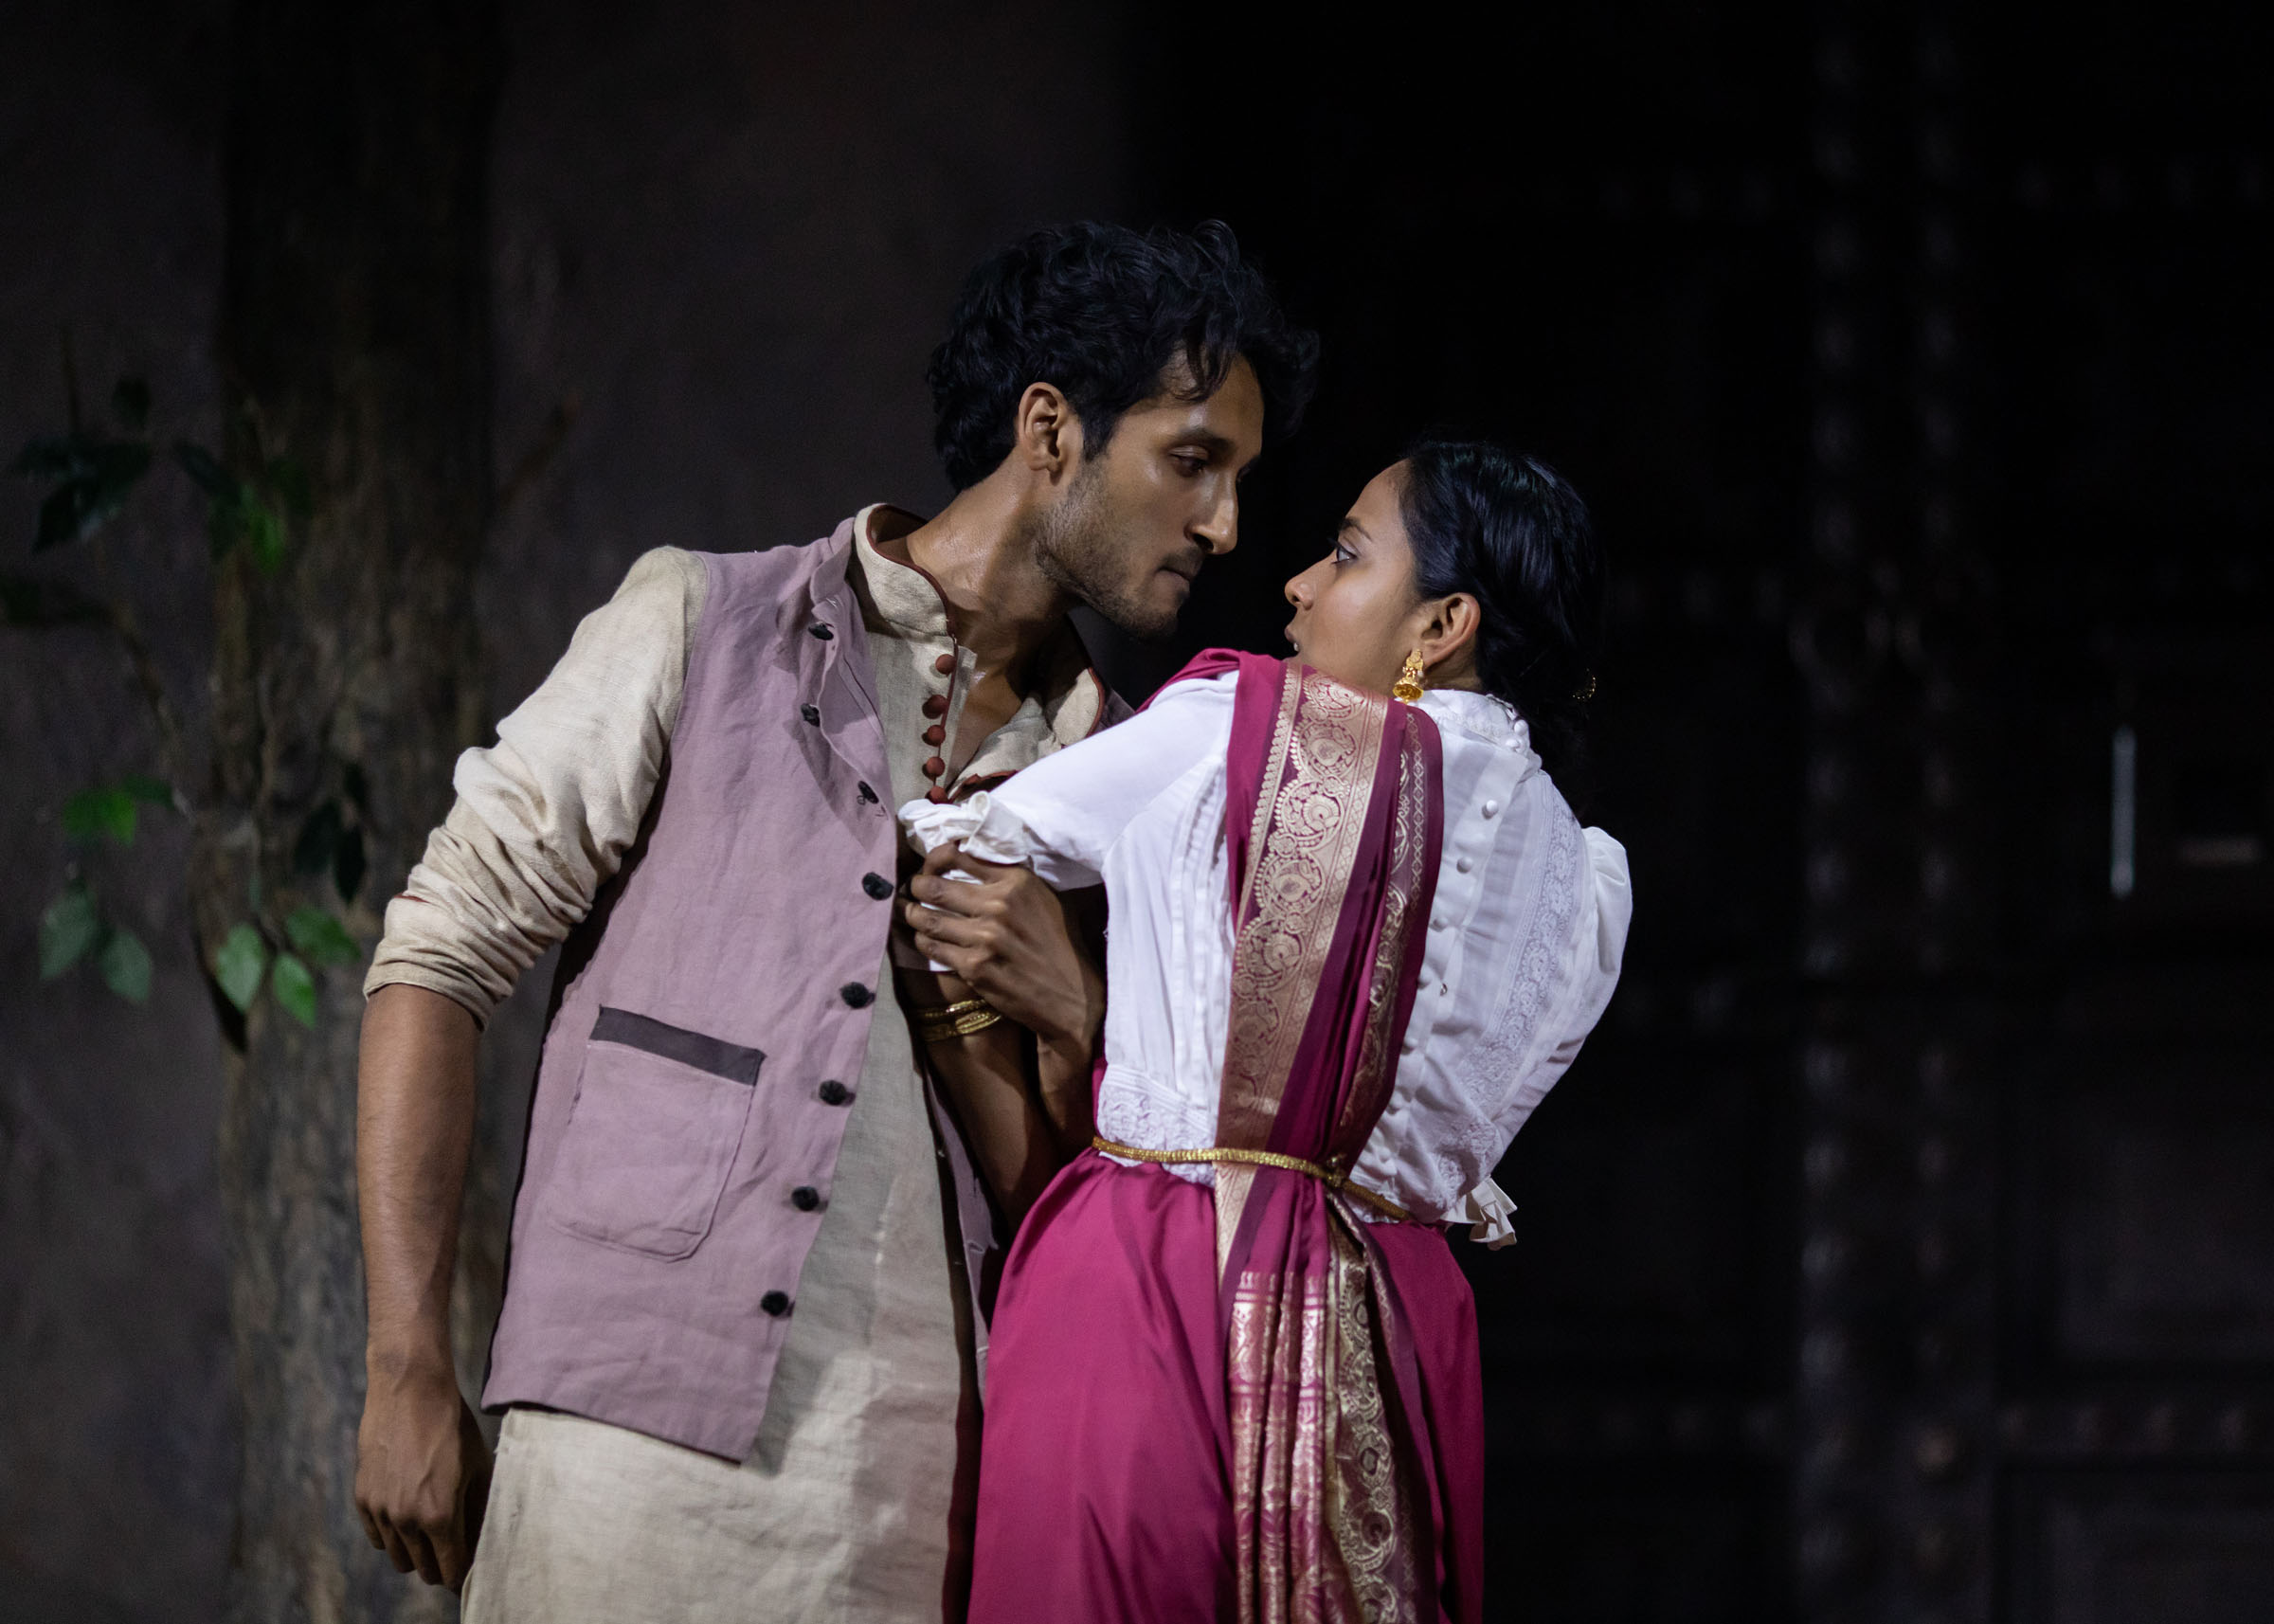 Assad Zaman as Kaushik Das and Anjana Vasan as Niru and